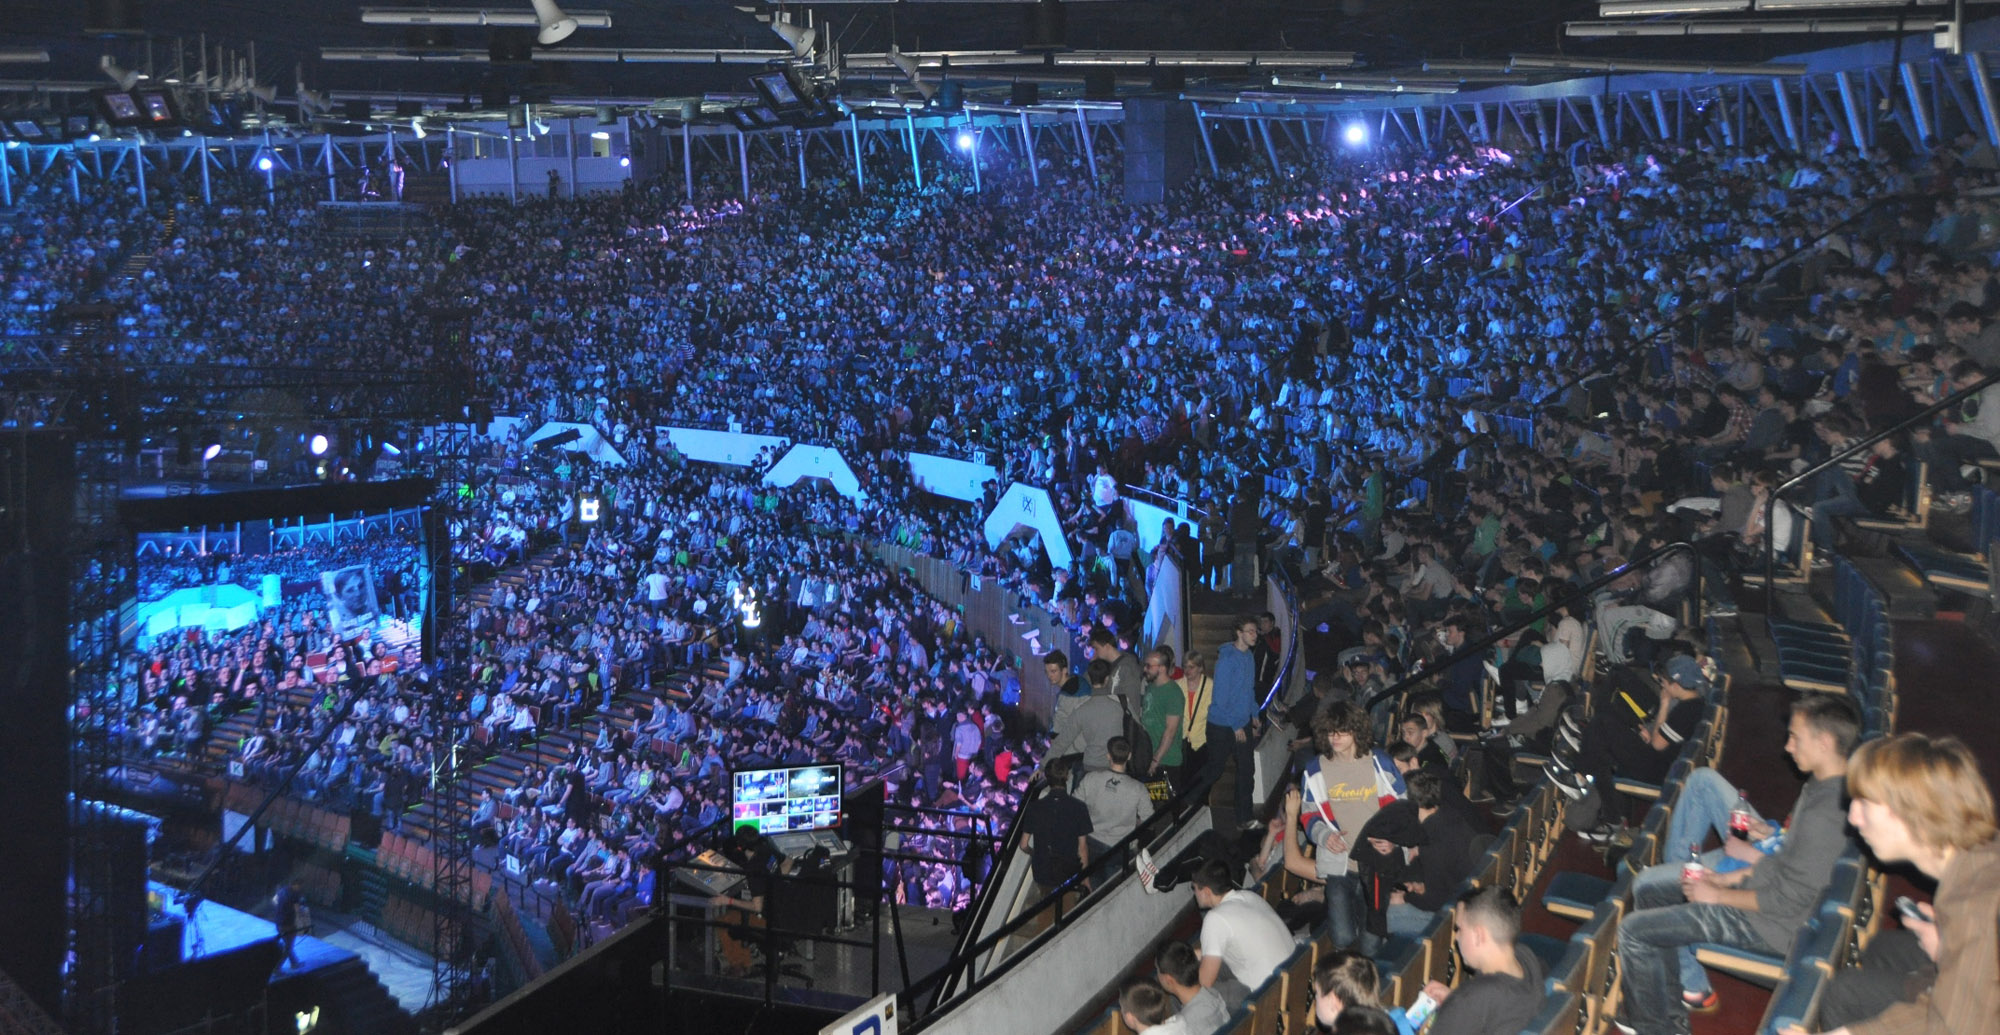 Asus Rog Wallpaper Hd Gallery Intel Extreme Masters 2014 Republic Of Gamers